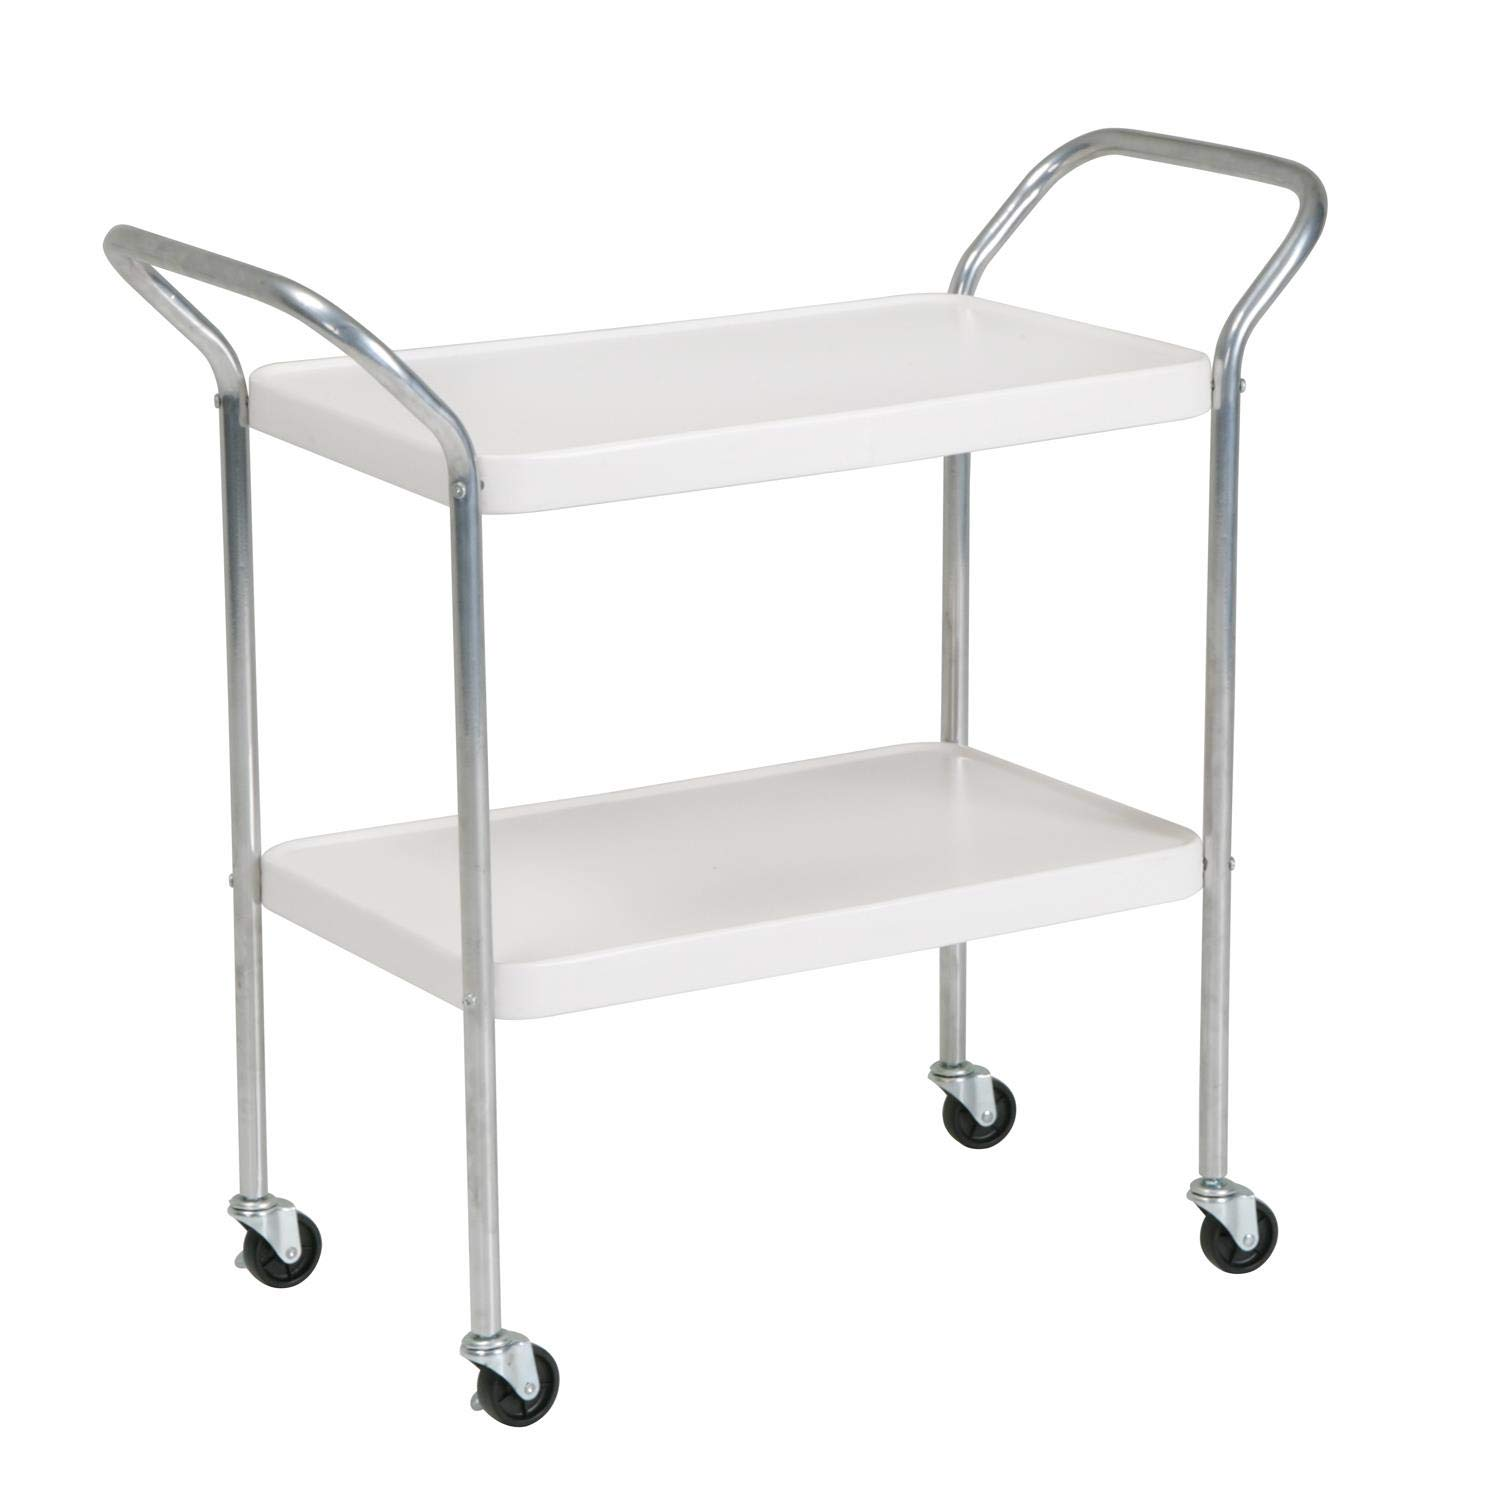 COSCO Stylaire 2 Tier Serving Cart, White & Silver